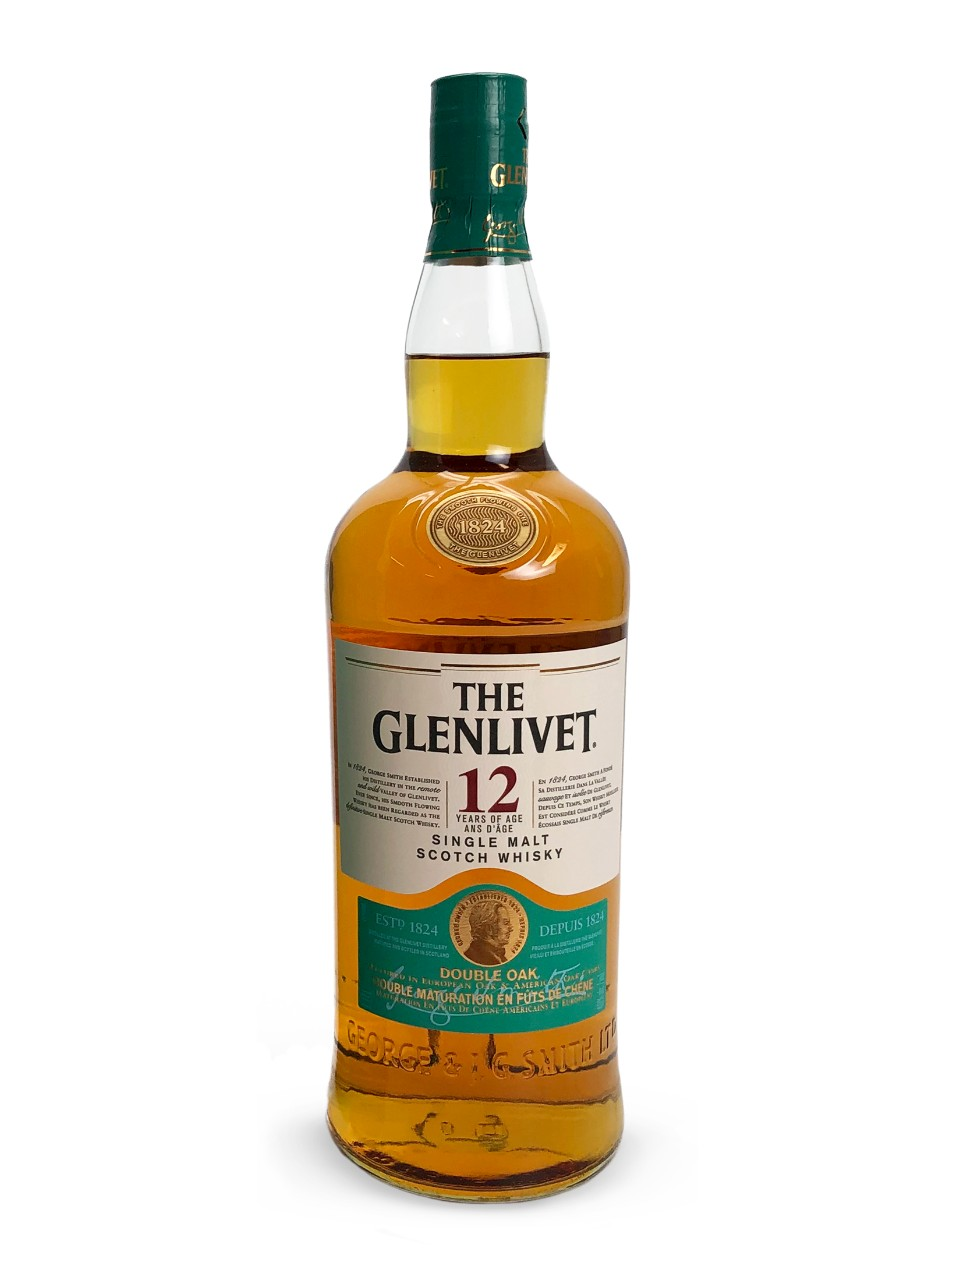 The Glenlivet 12 Year Old Single Malt Scotch Whisky from LCBO